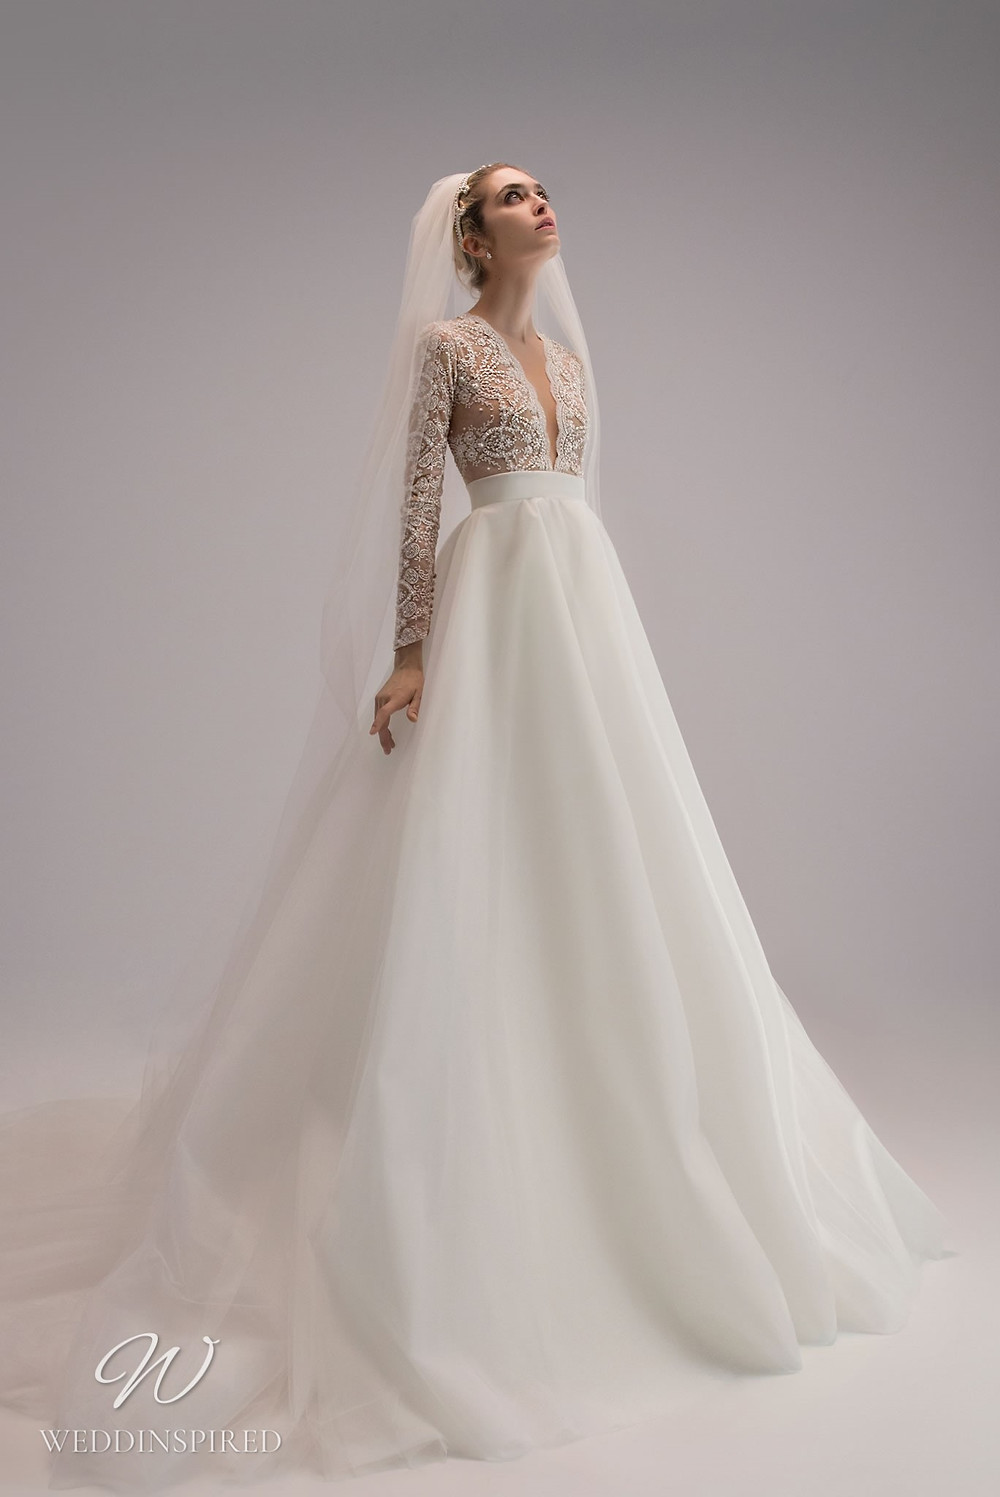 An Ersa Atelier 2021 ball gown wedding dress with a silk skirt and a lace bodice with long sleeves and beading